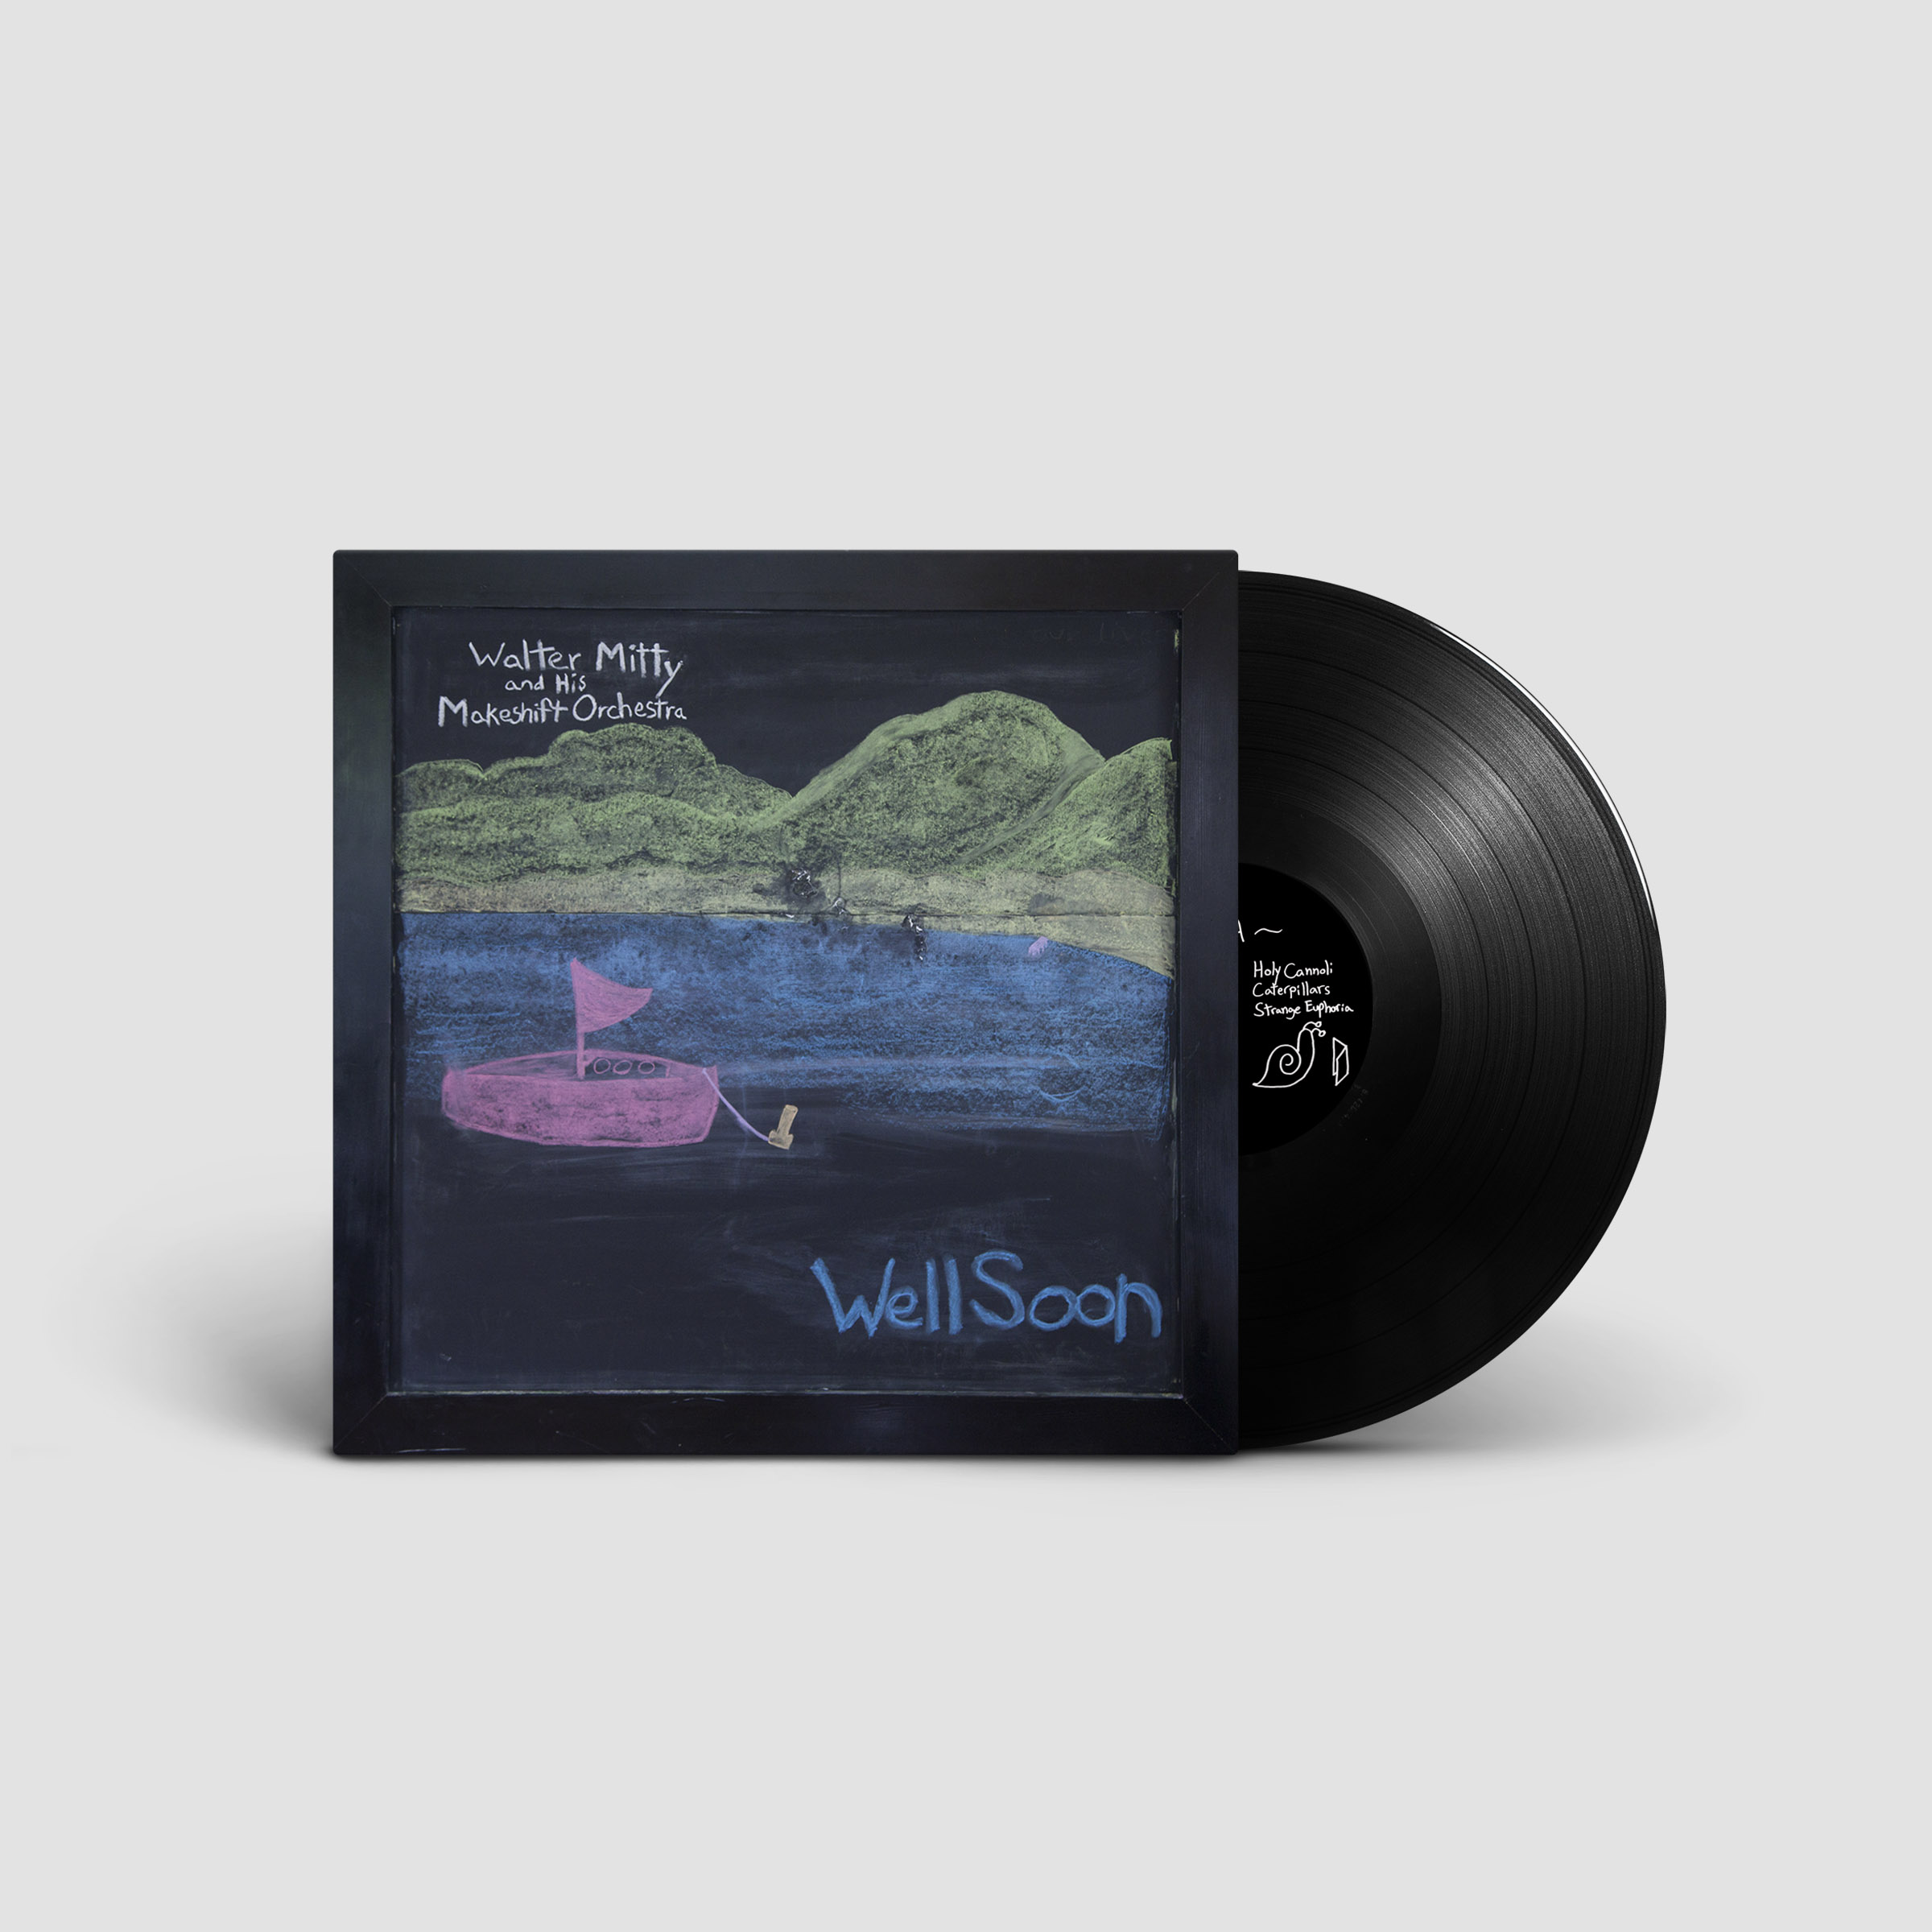 Walter Mitty and His Makeshift Orchestra - Well Soon LP/CS